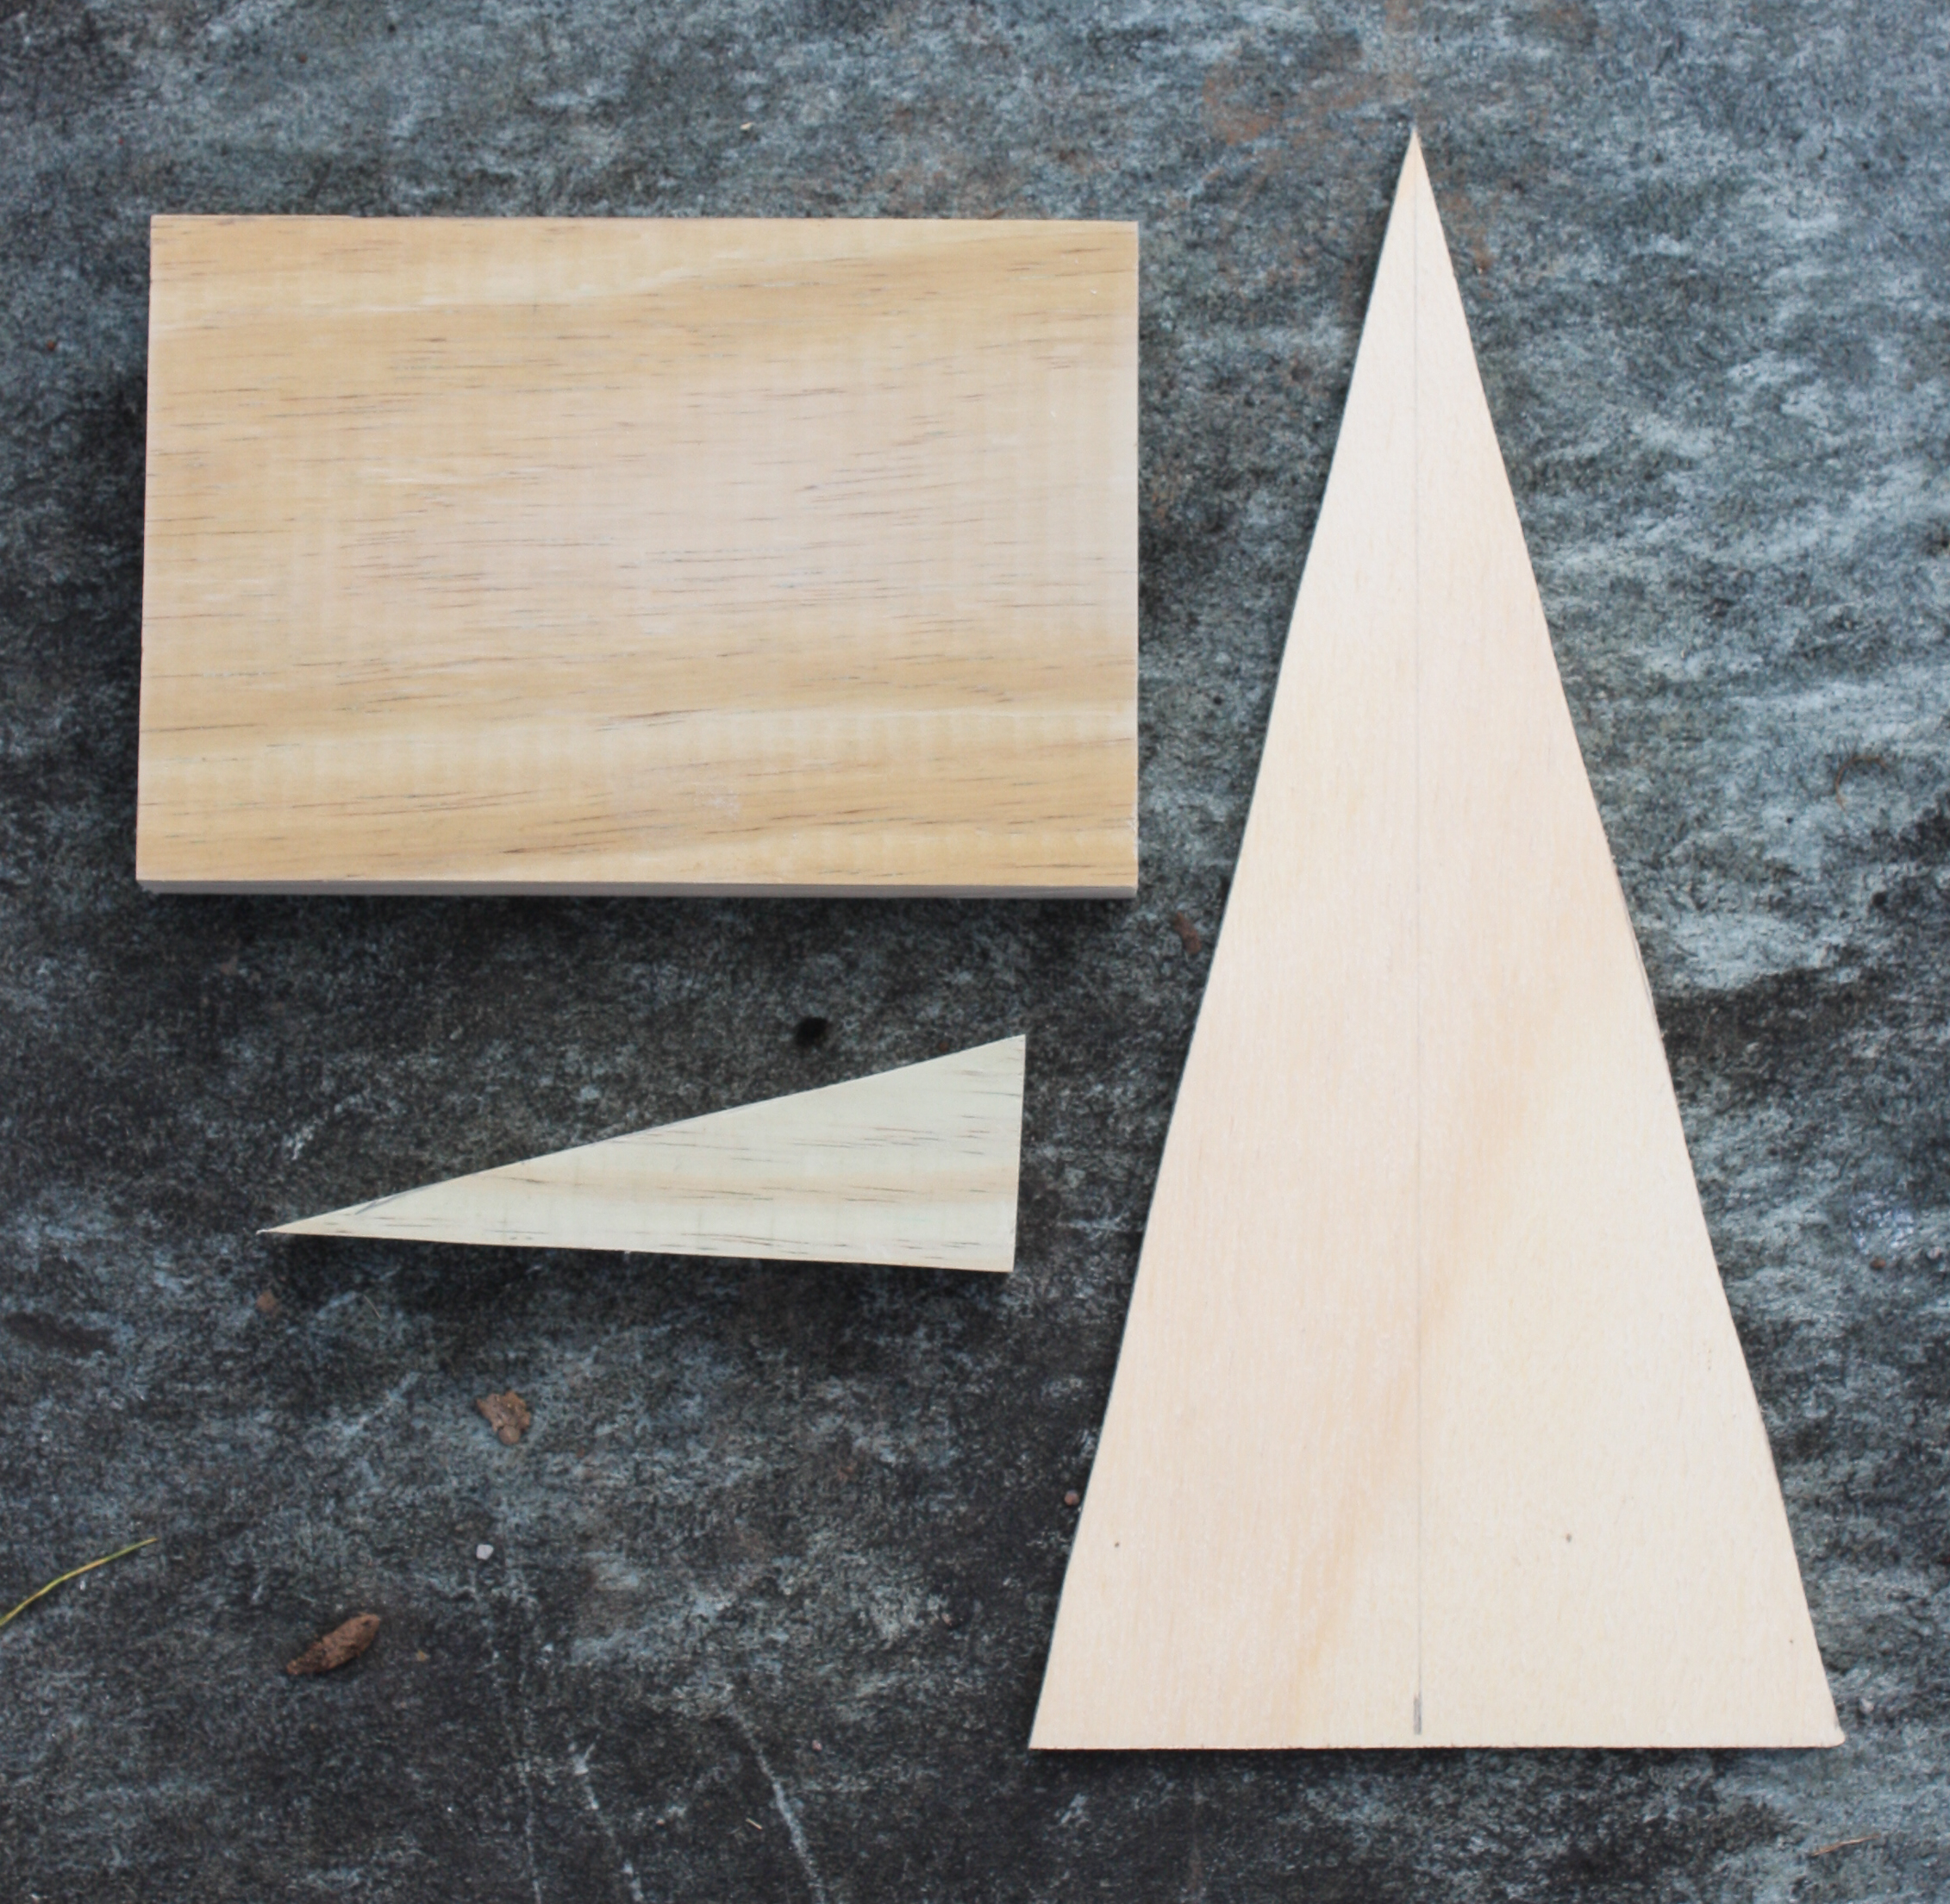 How to Make a Patchwork Wood Christmas Tree - Follow the step-by-step tutorial to make your own.